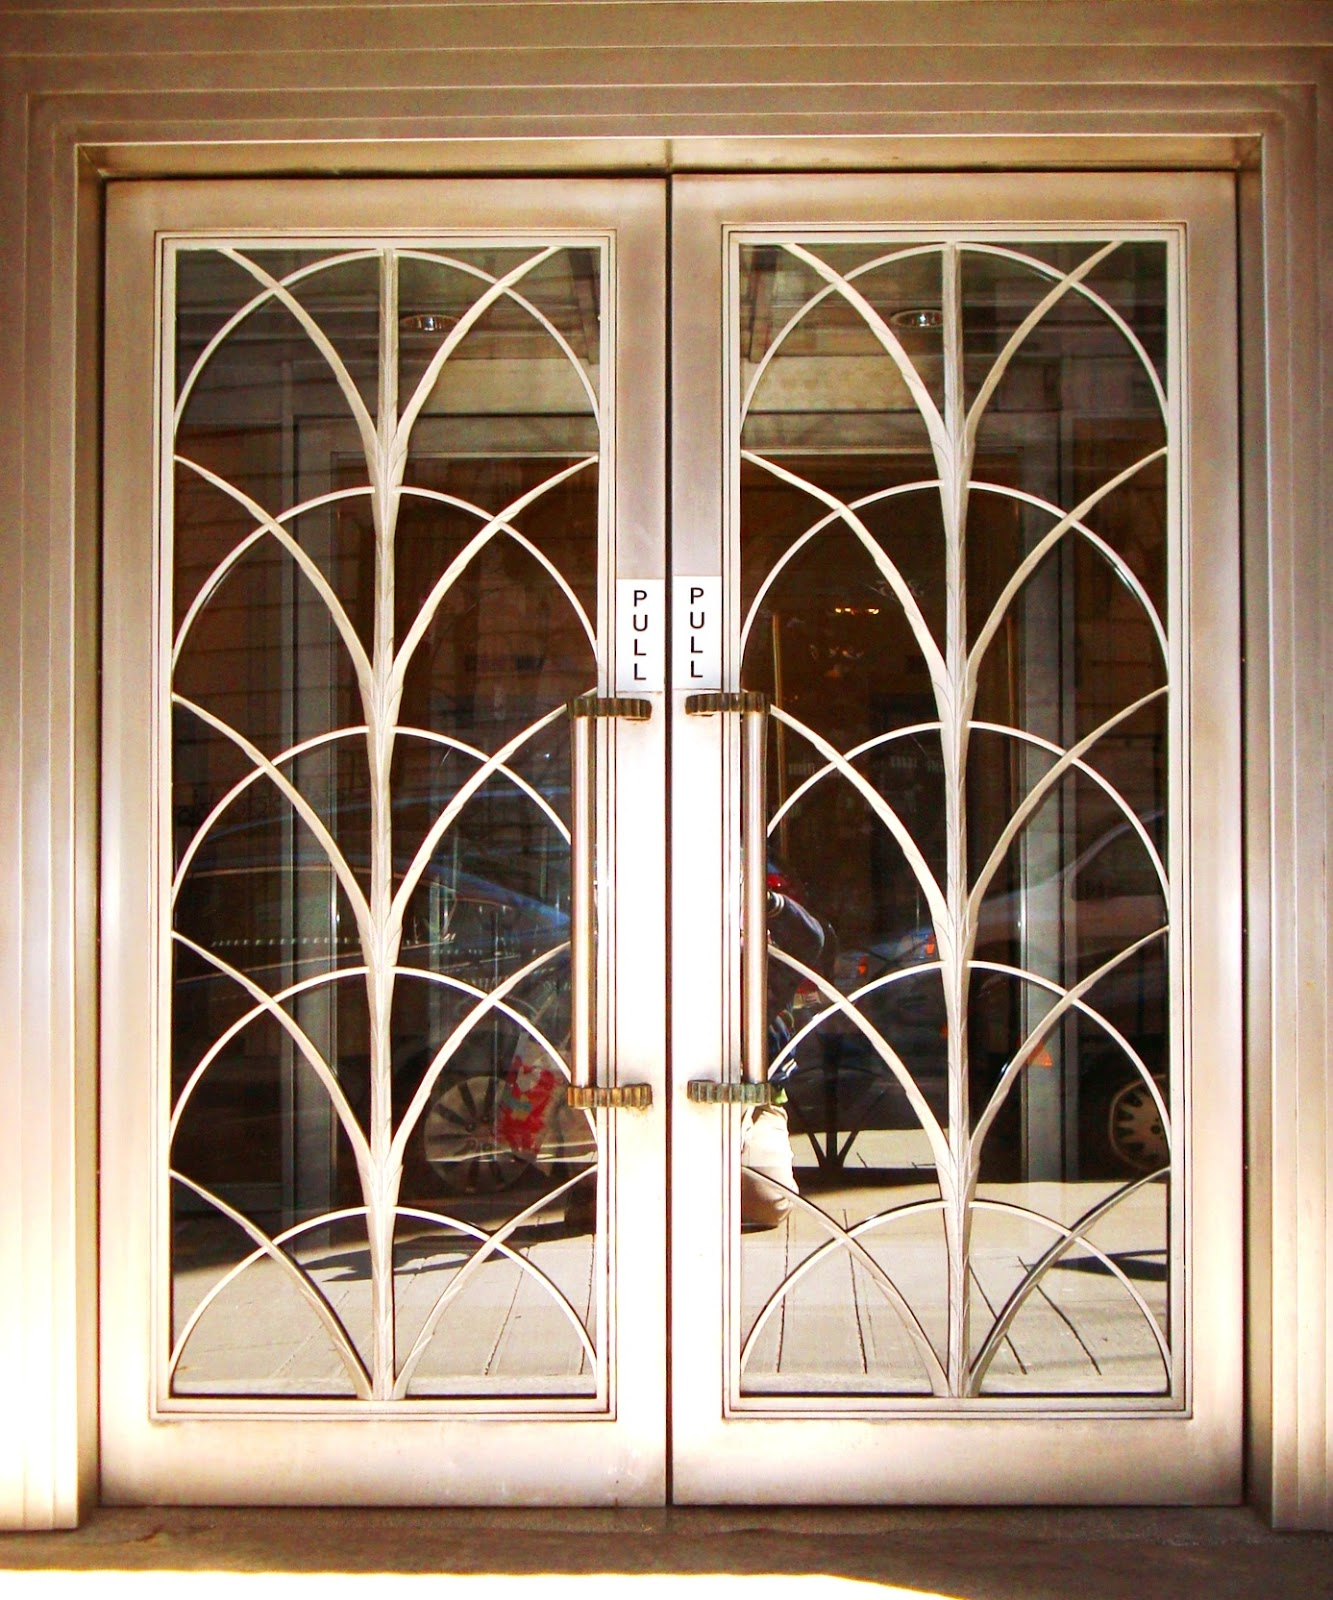 David cobb craig art deco doors in n y c for Art glass windows and doors